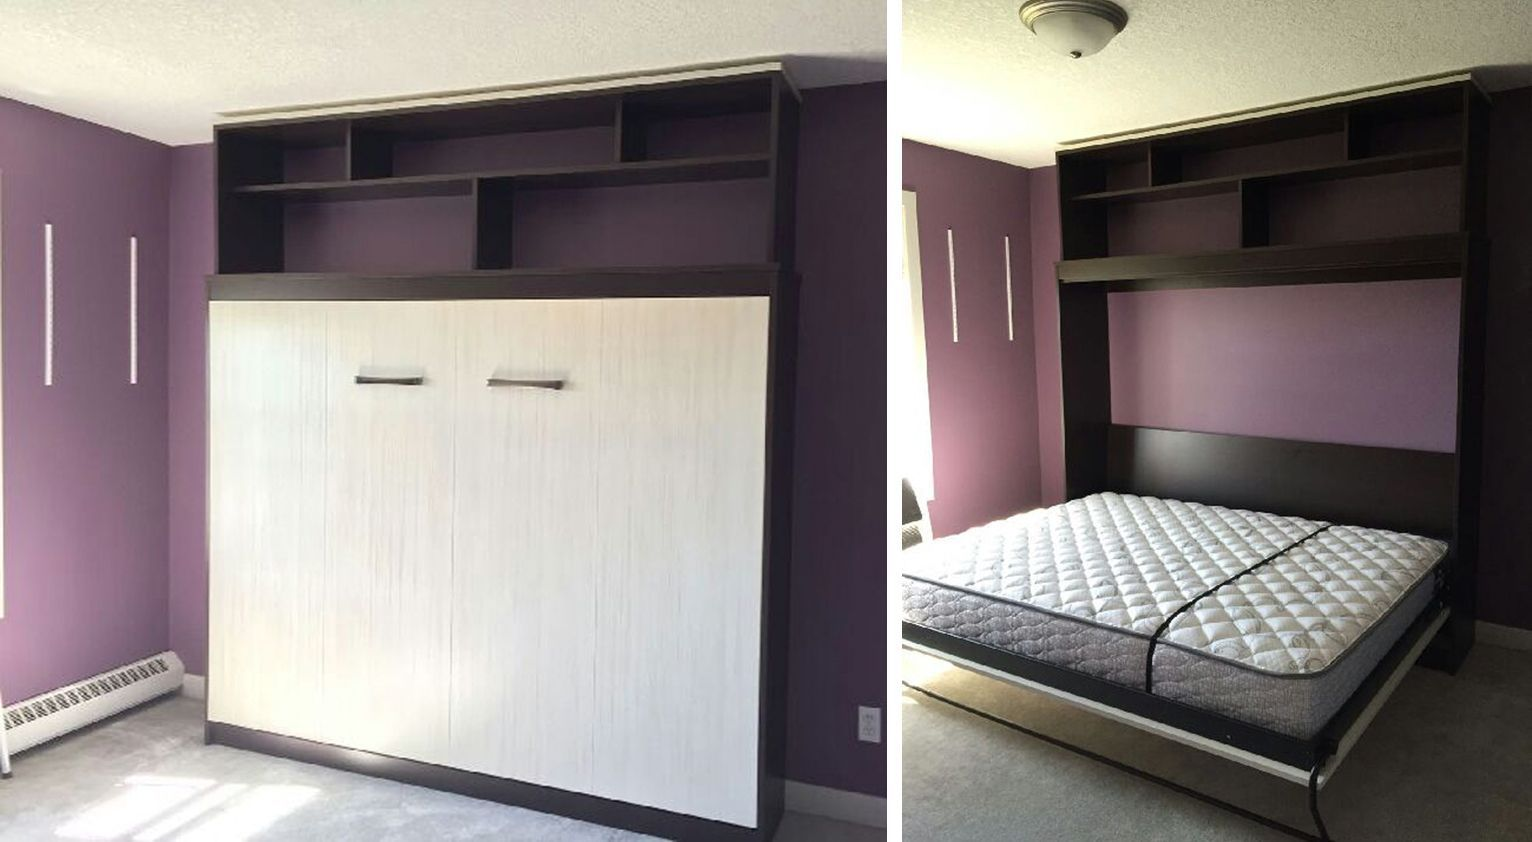 Superior Wall Beds Has Been Providing High Quality Murphy Beds Desk